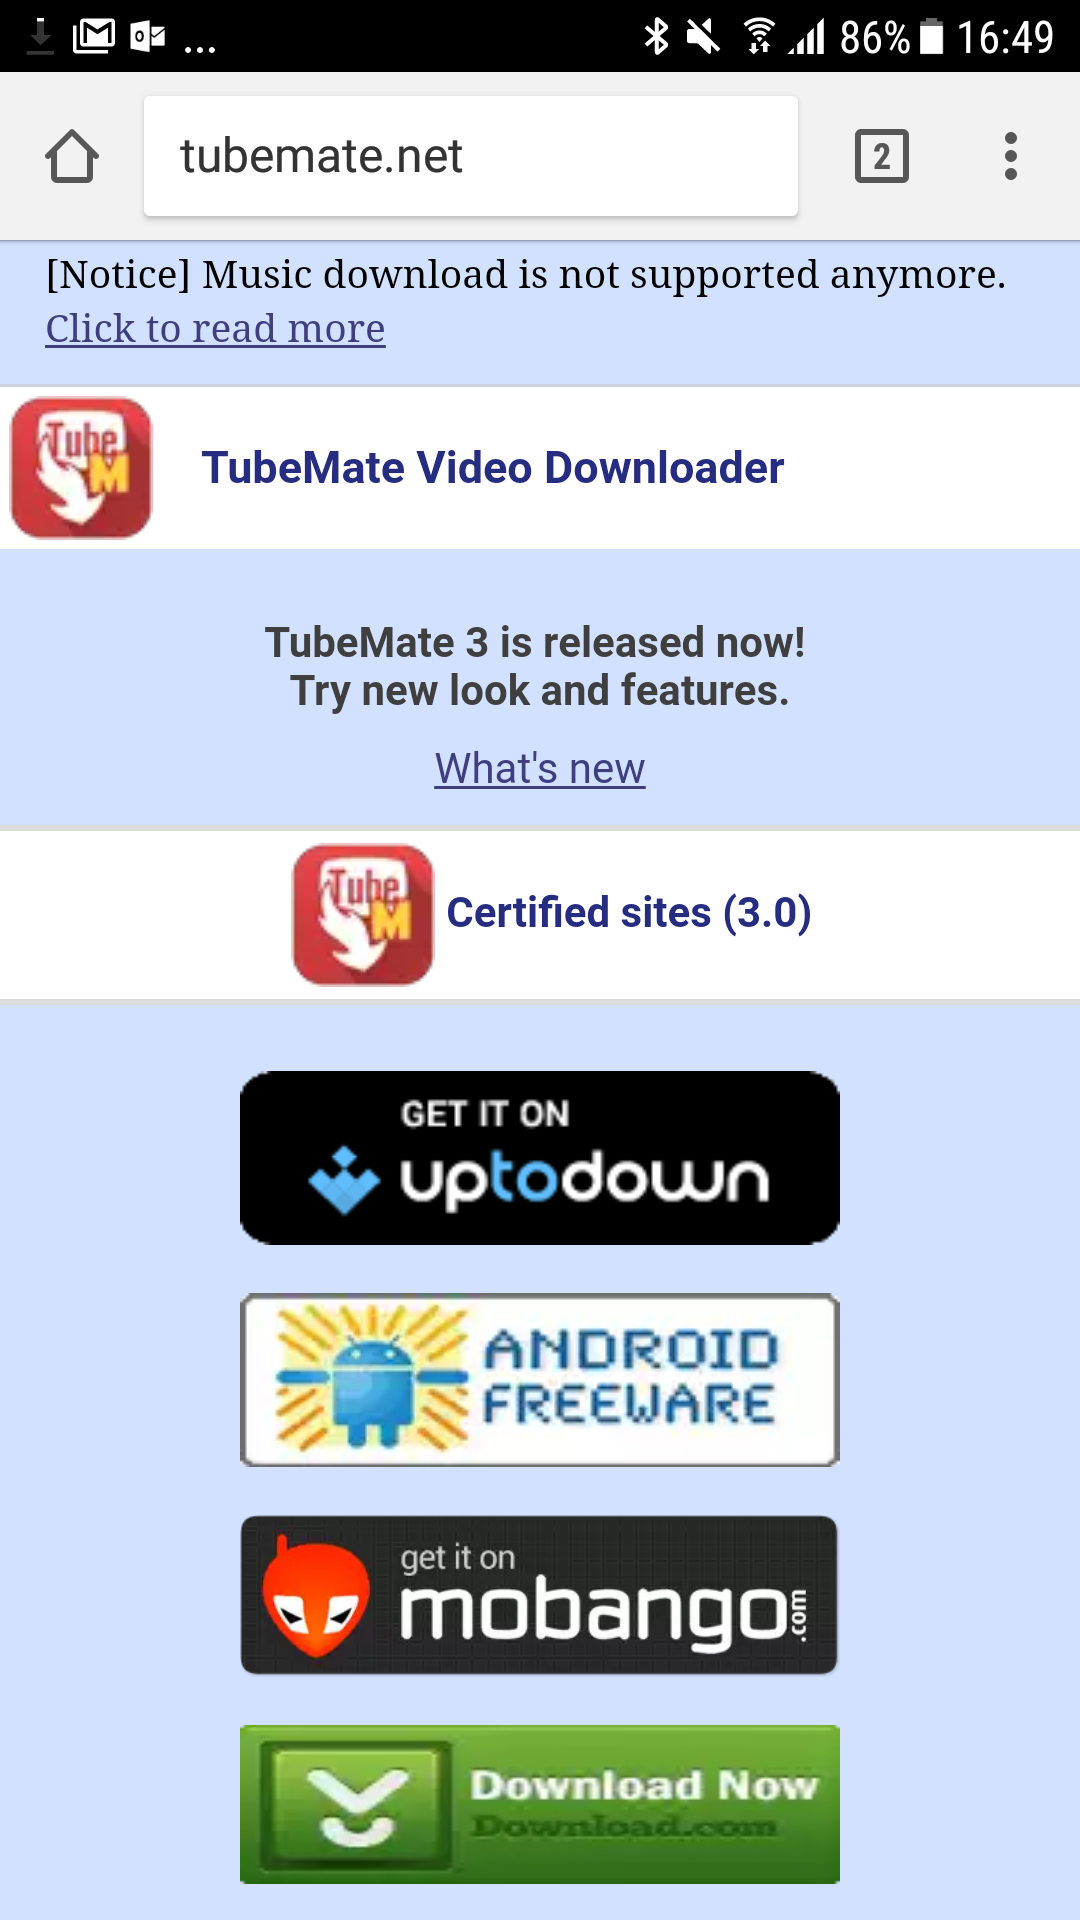 TubeMate now blocks music downloading, which was the whole